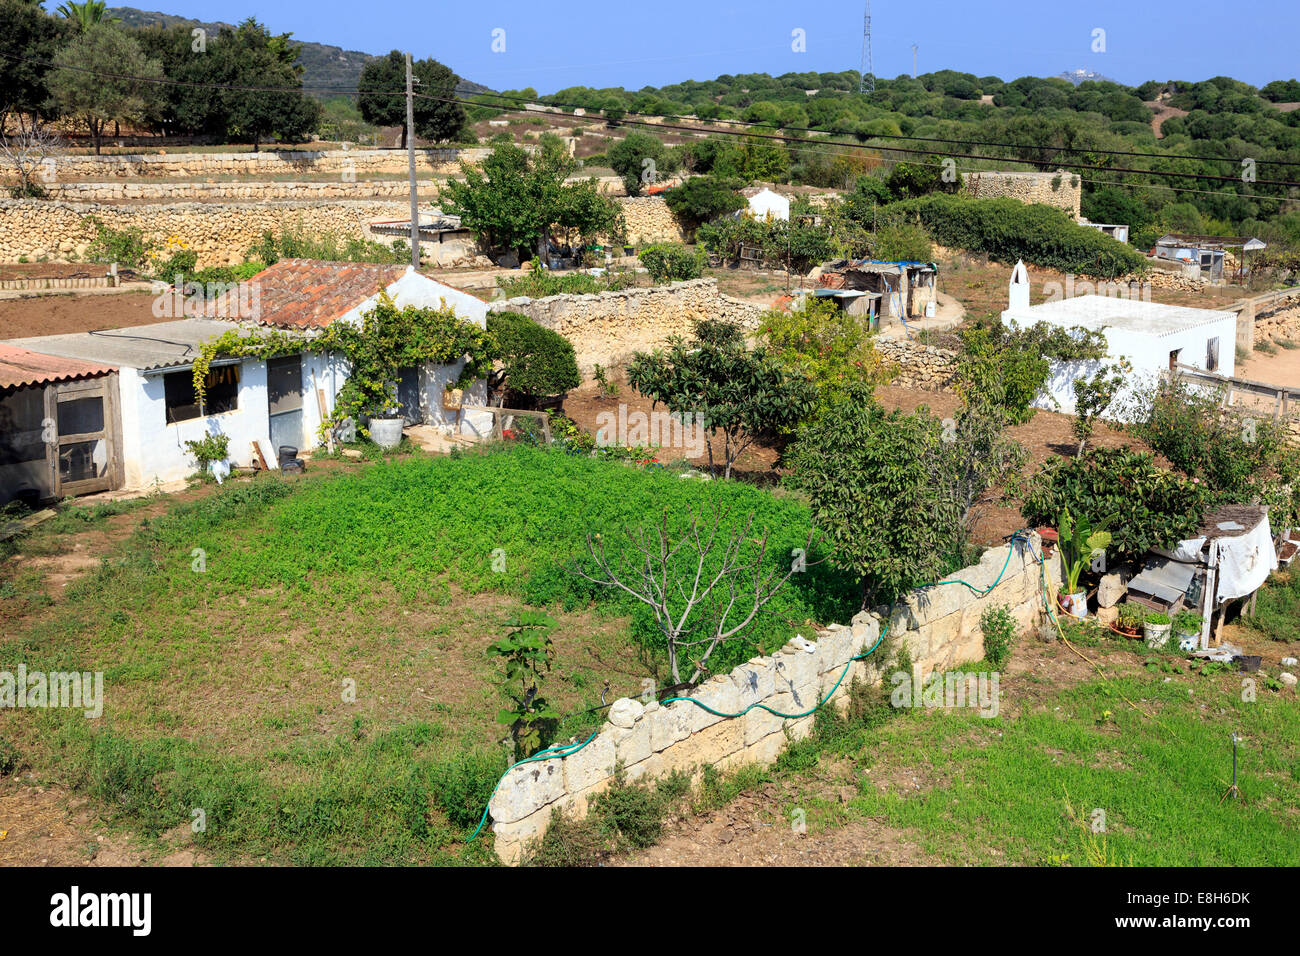 Traditional farming scene showing farmhouse and small holding fields, Menorca, Balearic Islands, Spain - Stock Image